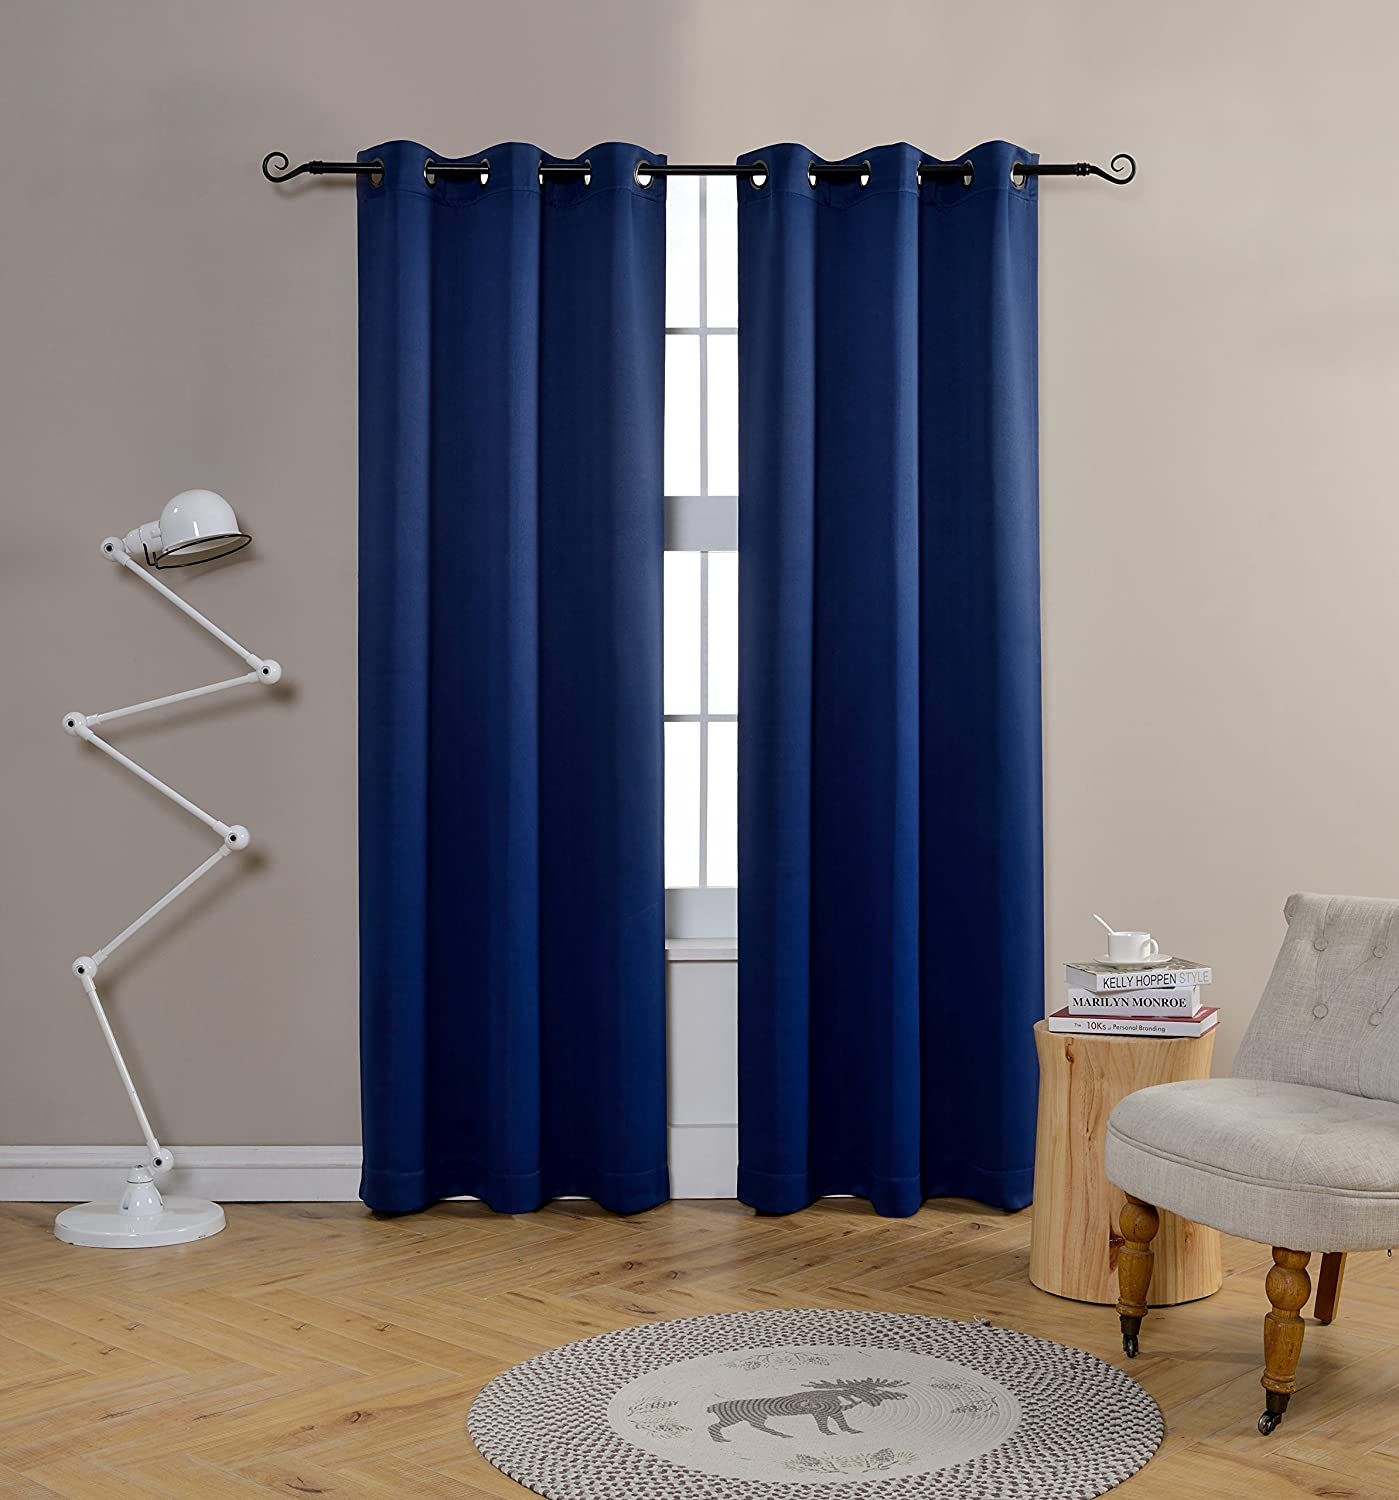 Blackout Thermal Curtains Sale – Ease Bedding with Style